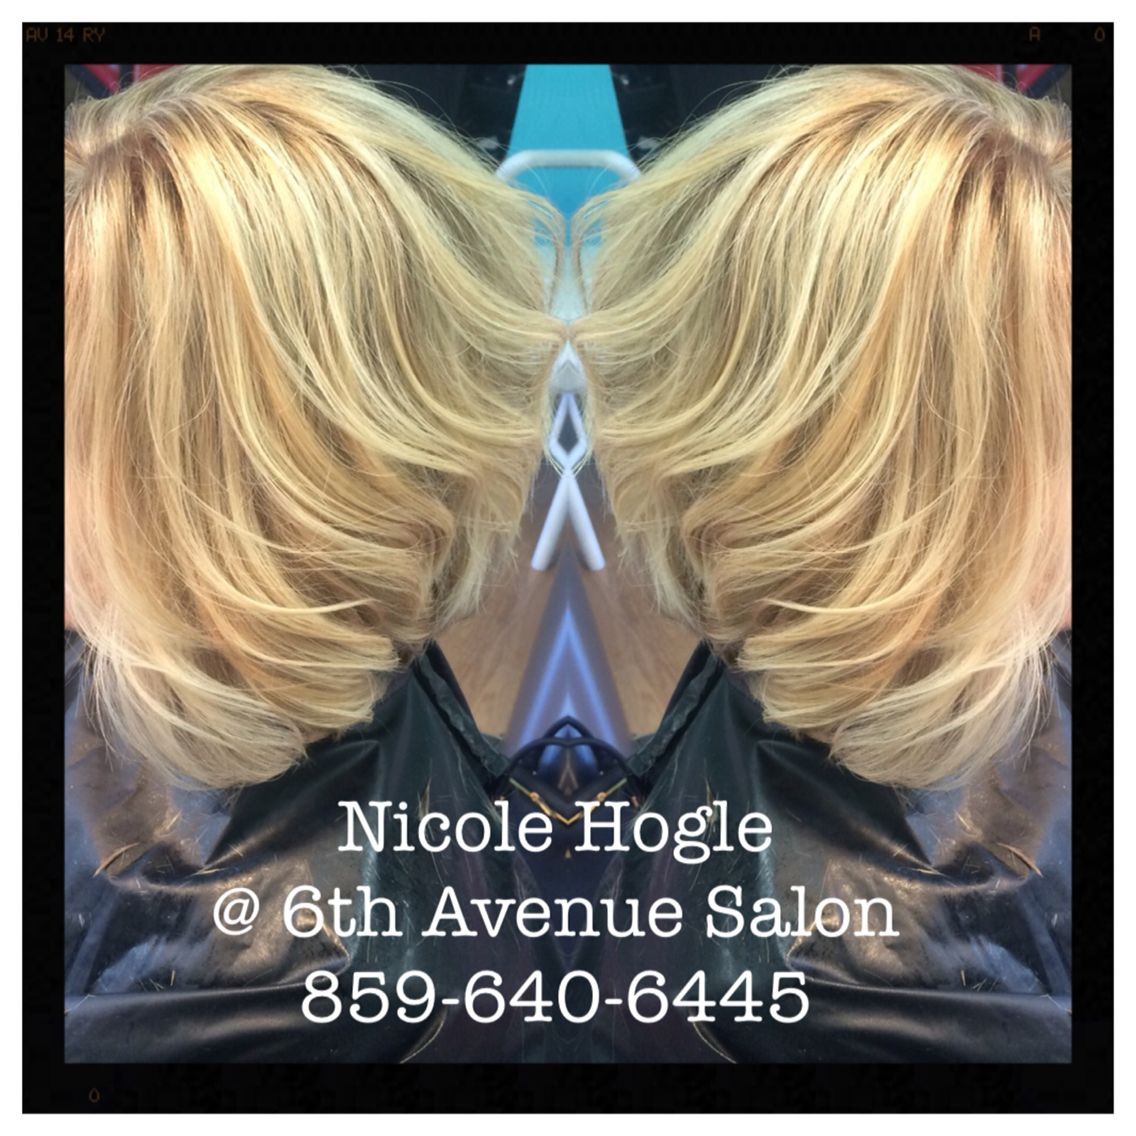 Blonde bob  Highlights starting at $75/Balayage/ombre starting at $85. Haircuts included with all colors $75 and over.       styleseat.com/nicolehogle 859-640-6445 Dew or Dye 33 east 8th Newport Ky 41071